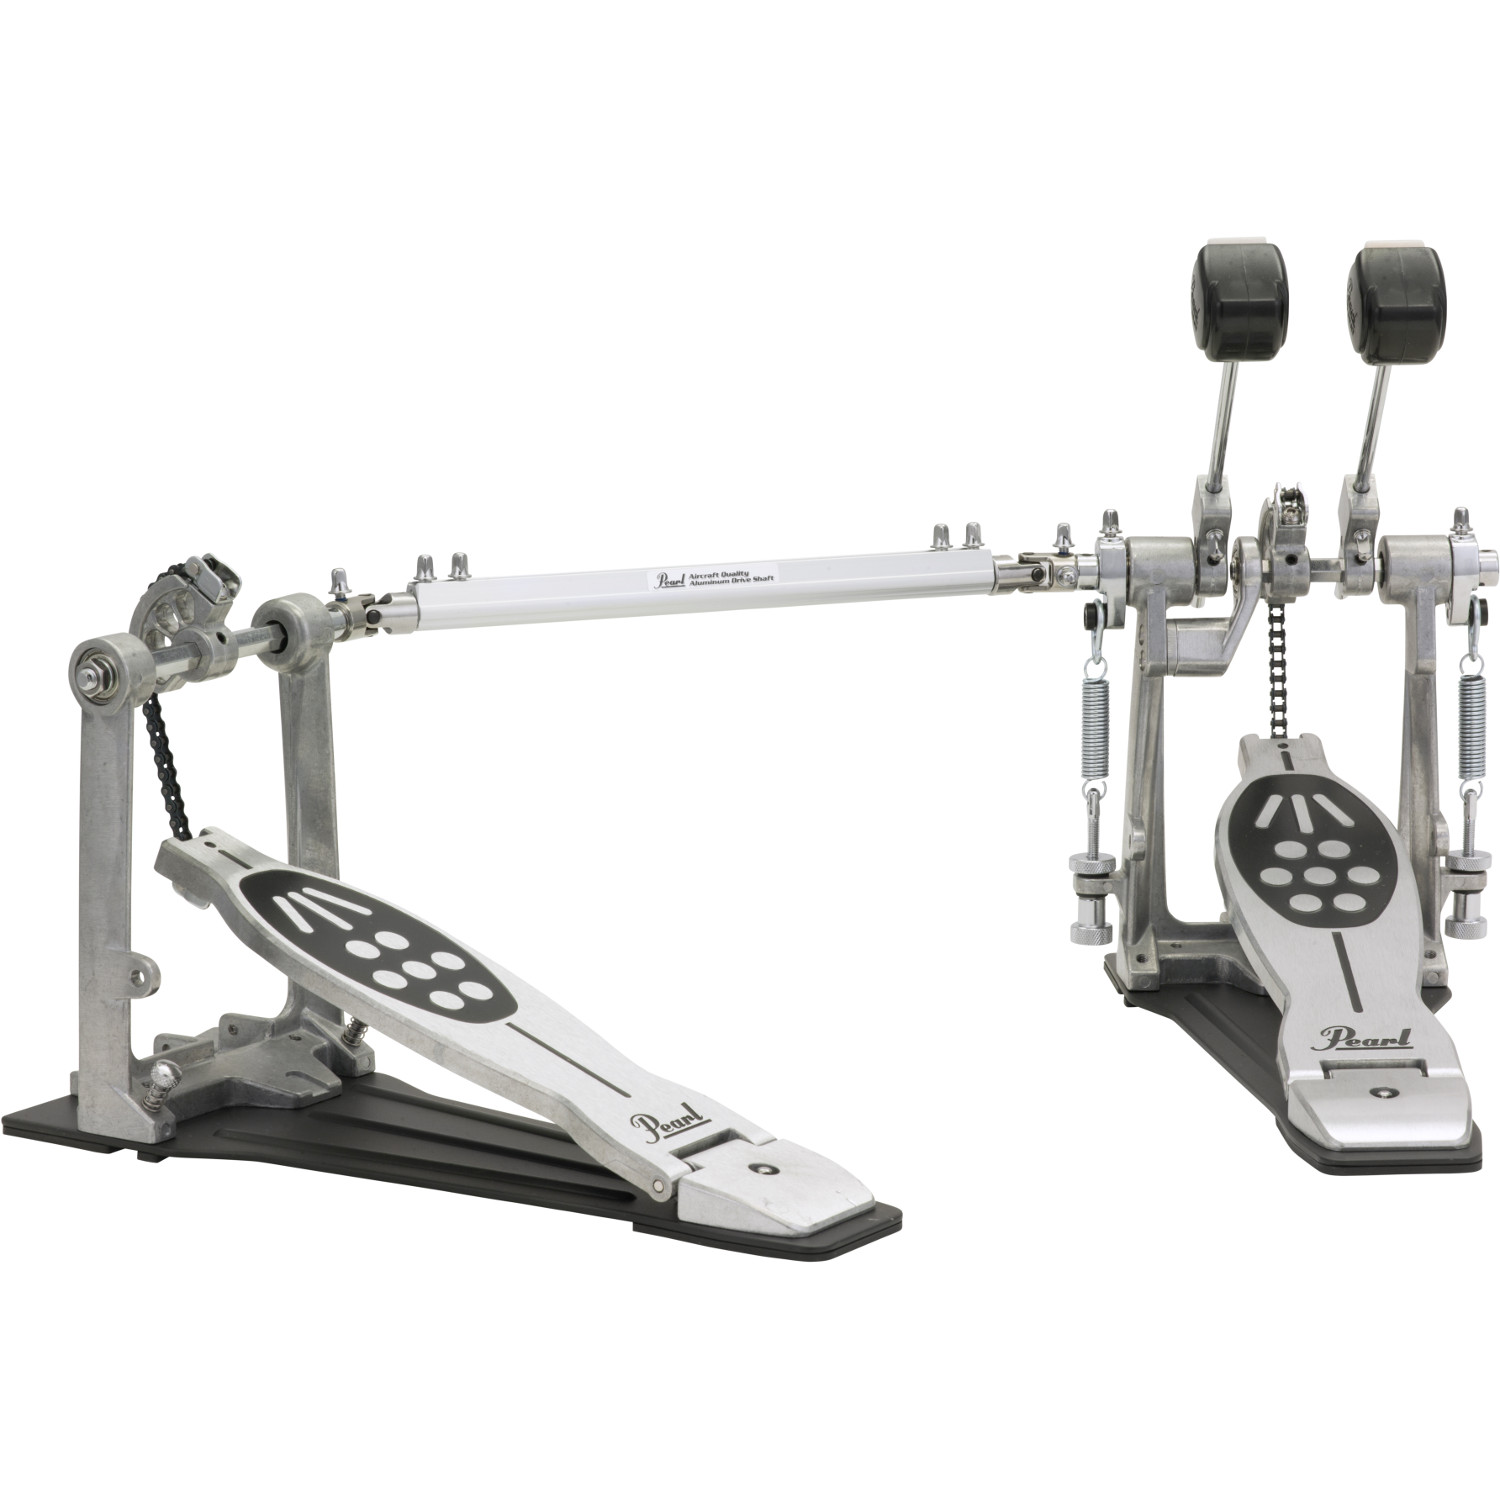 Pearl P 922 PowerShifter double bass drum pedal